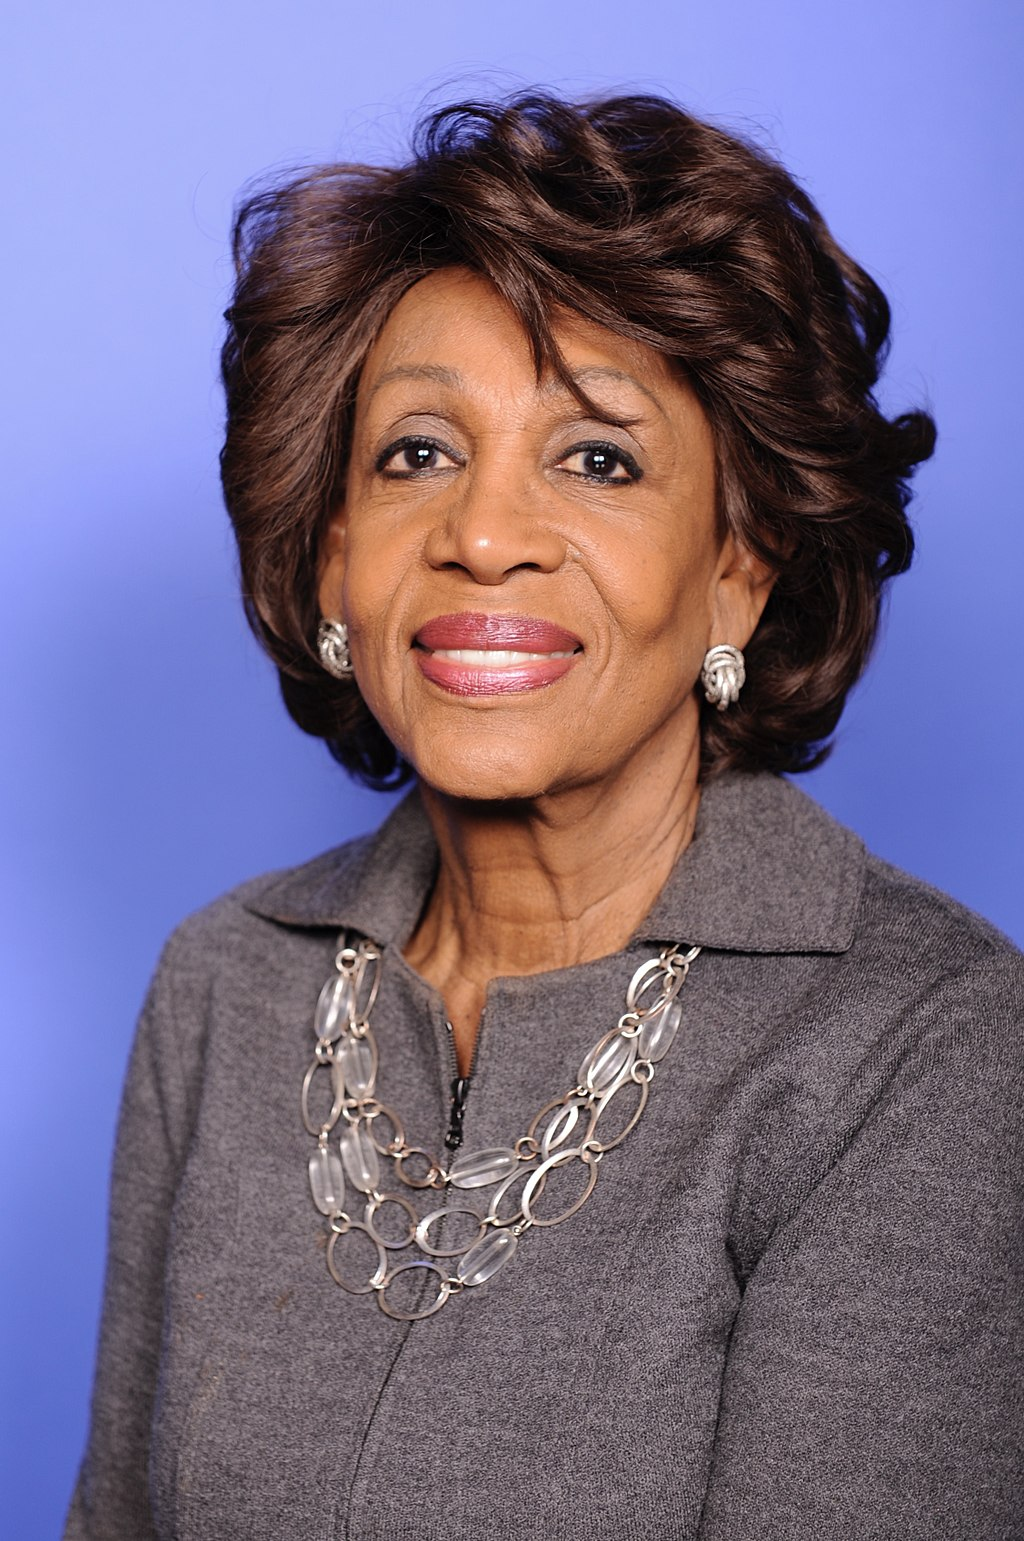 Maxine Waters is awful, encouraging more